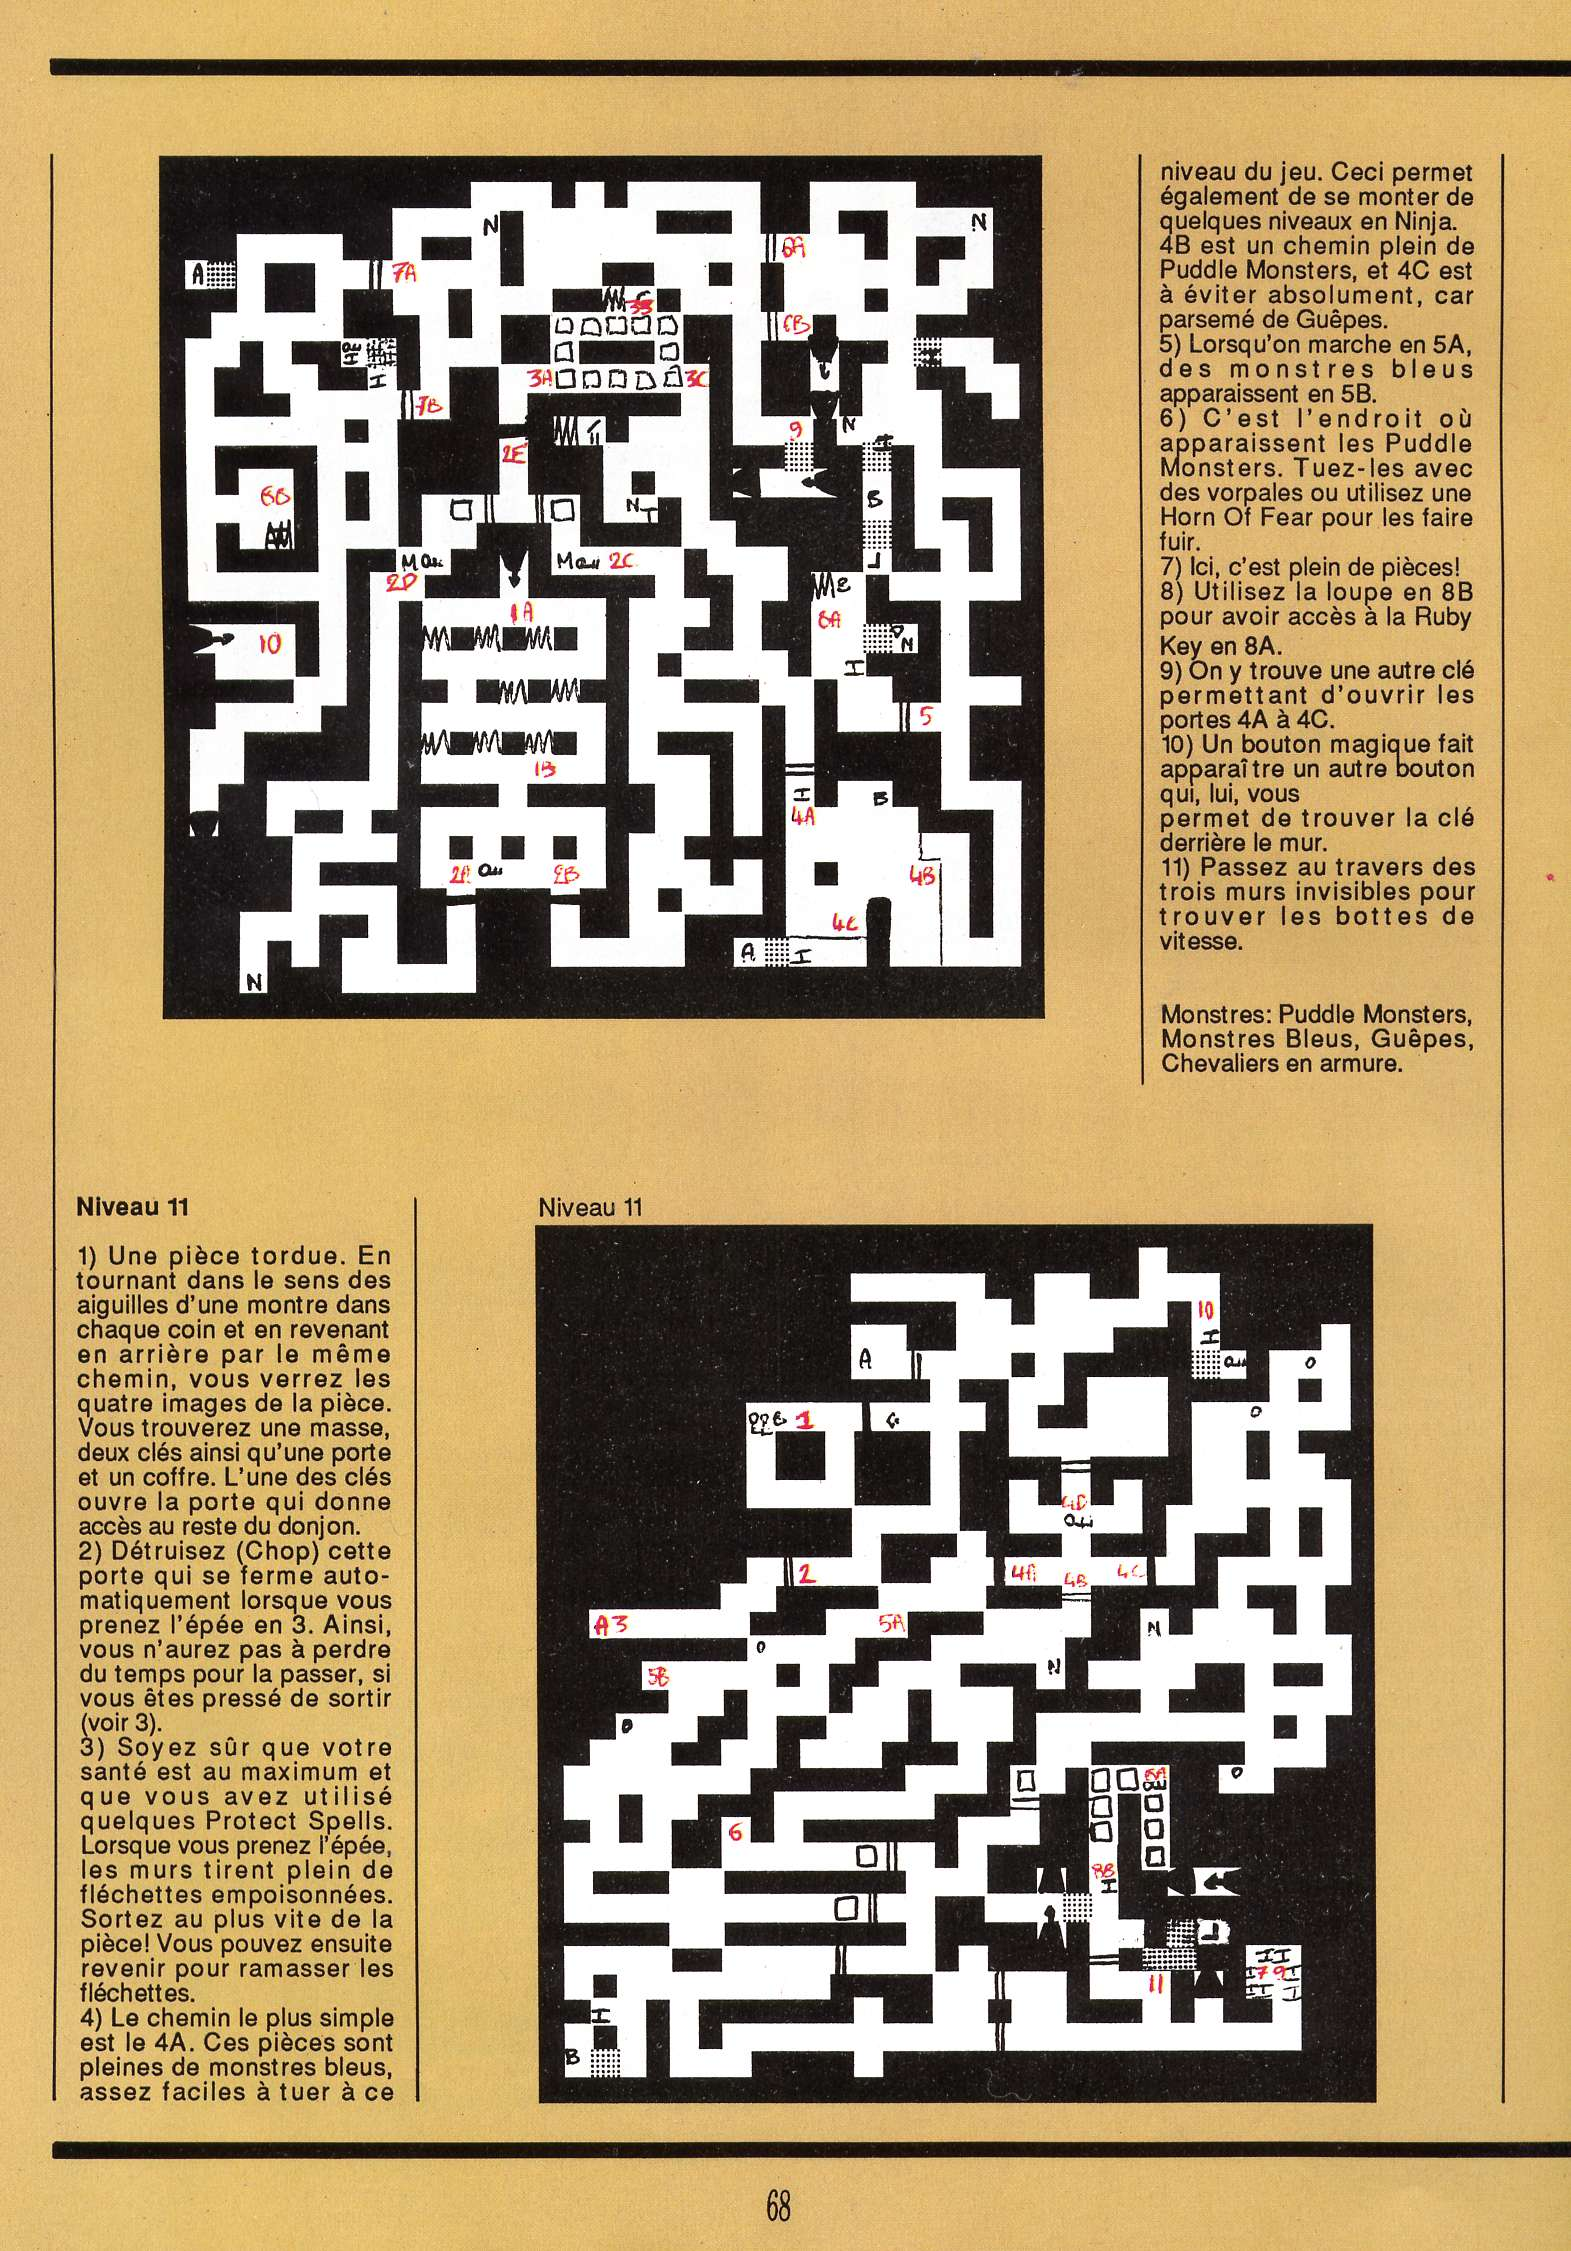 Dungeon Master for Atari ST Guide published in French magazine 'Gen4', Issue #9, March 1989, Page 68